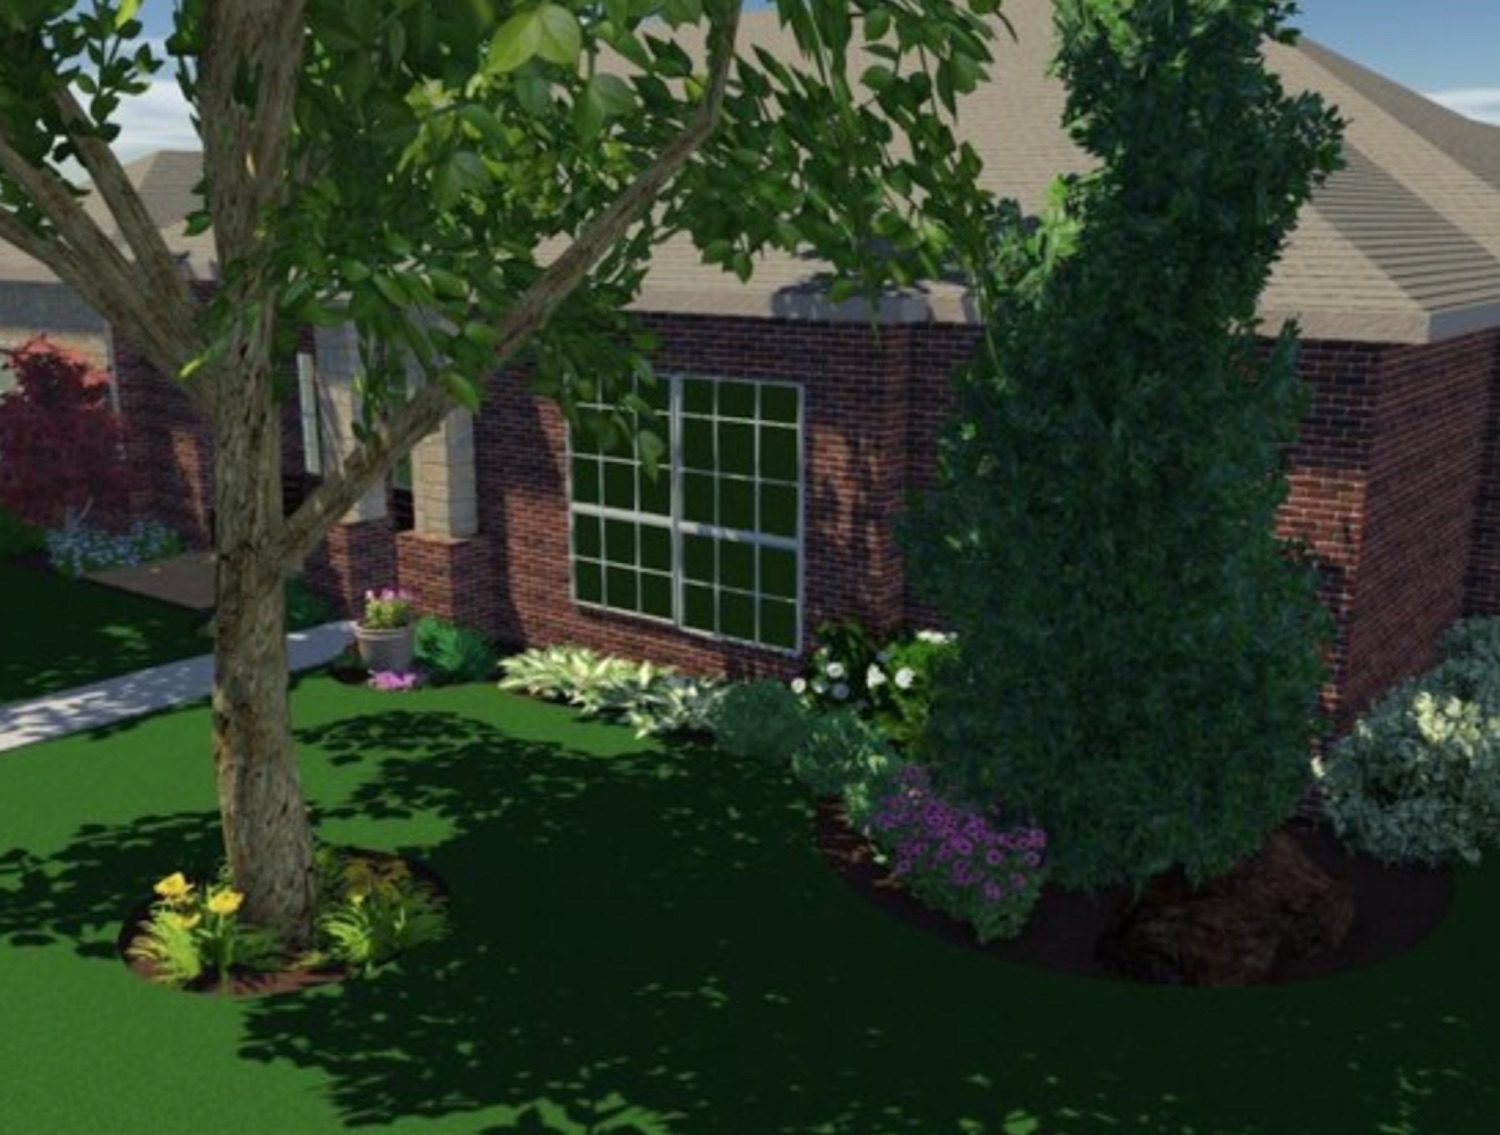 shade_landscape_design_front_house.jpg